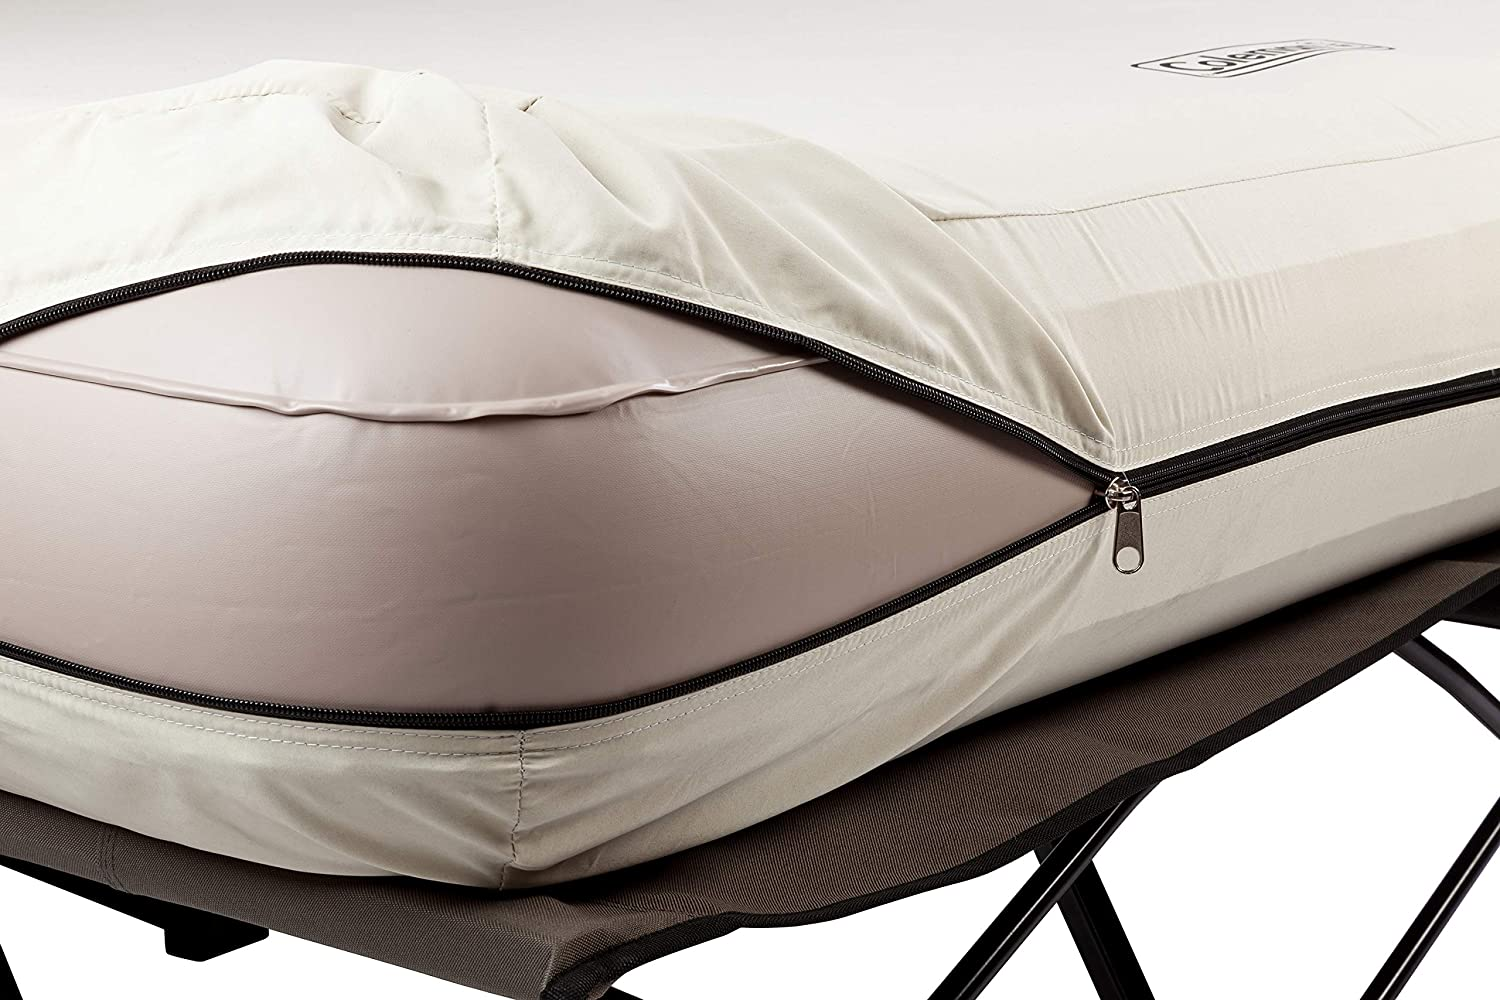 and Pump Combo Coleman Camping Cot Air Mattress Folding Camp Cot and Air Bed with Side Tables and Battery Operated Pump